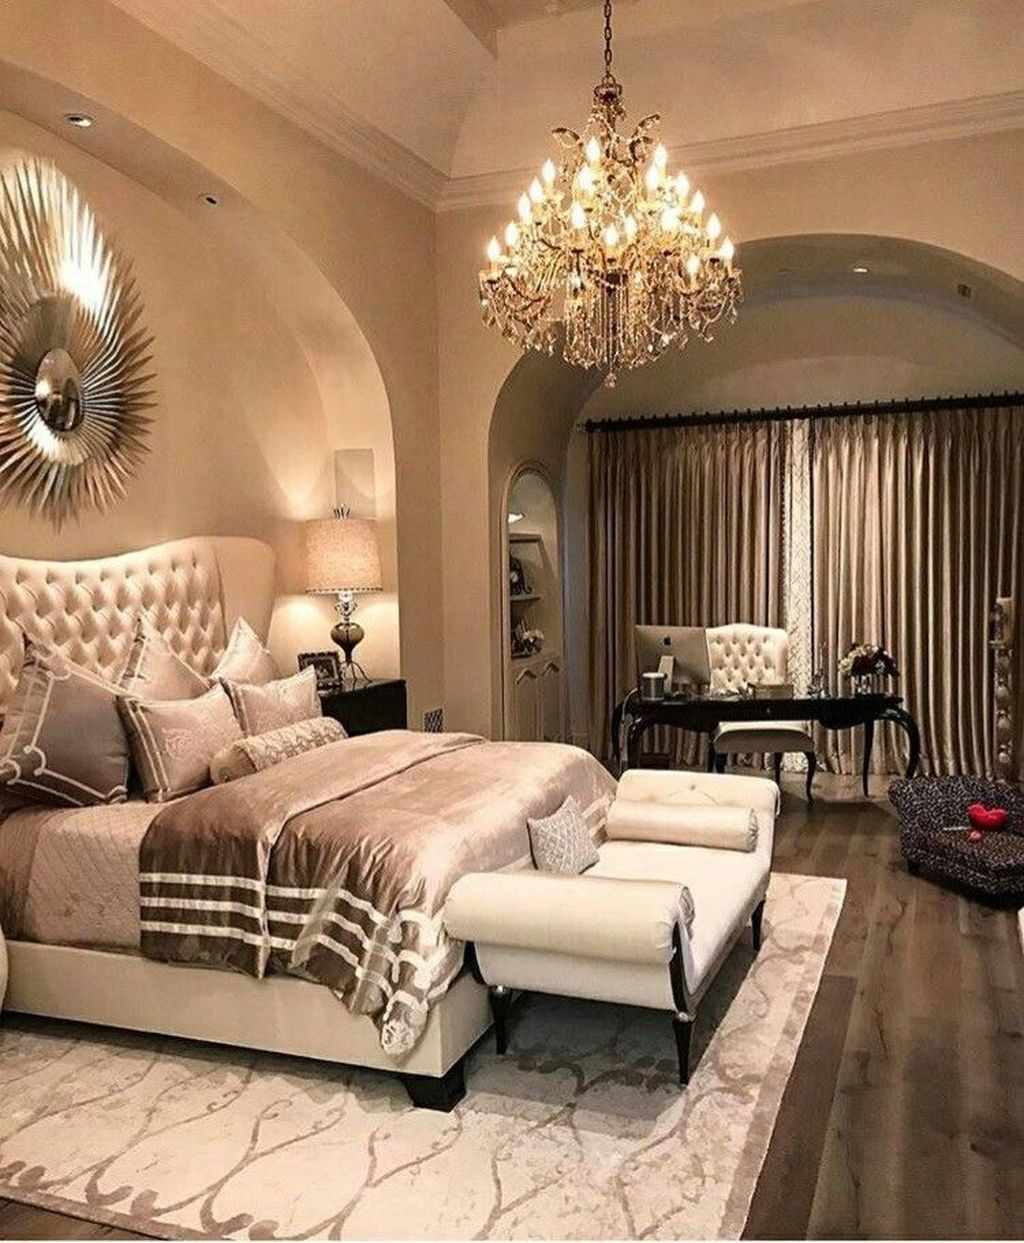 Bedroom Ideas 52 Modern Design Ideas For Your Bedroom: 45 Amazing Luxury Champagne Bedroom Ideas With Elegant